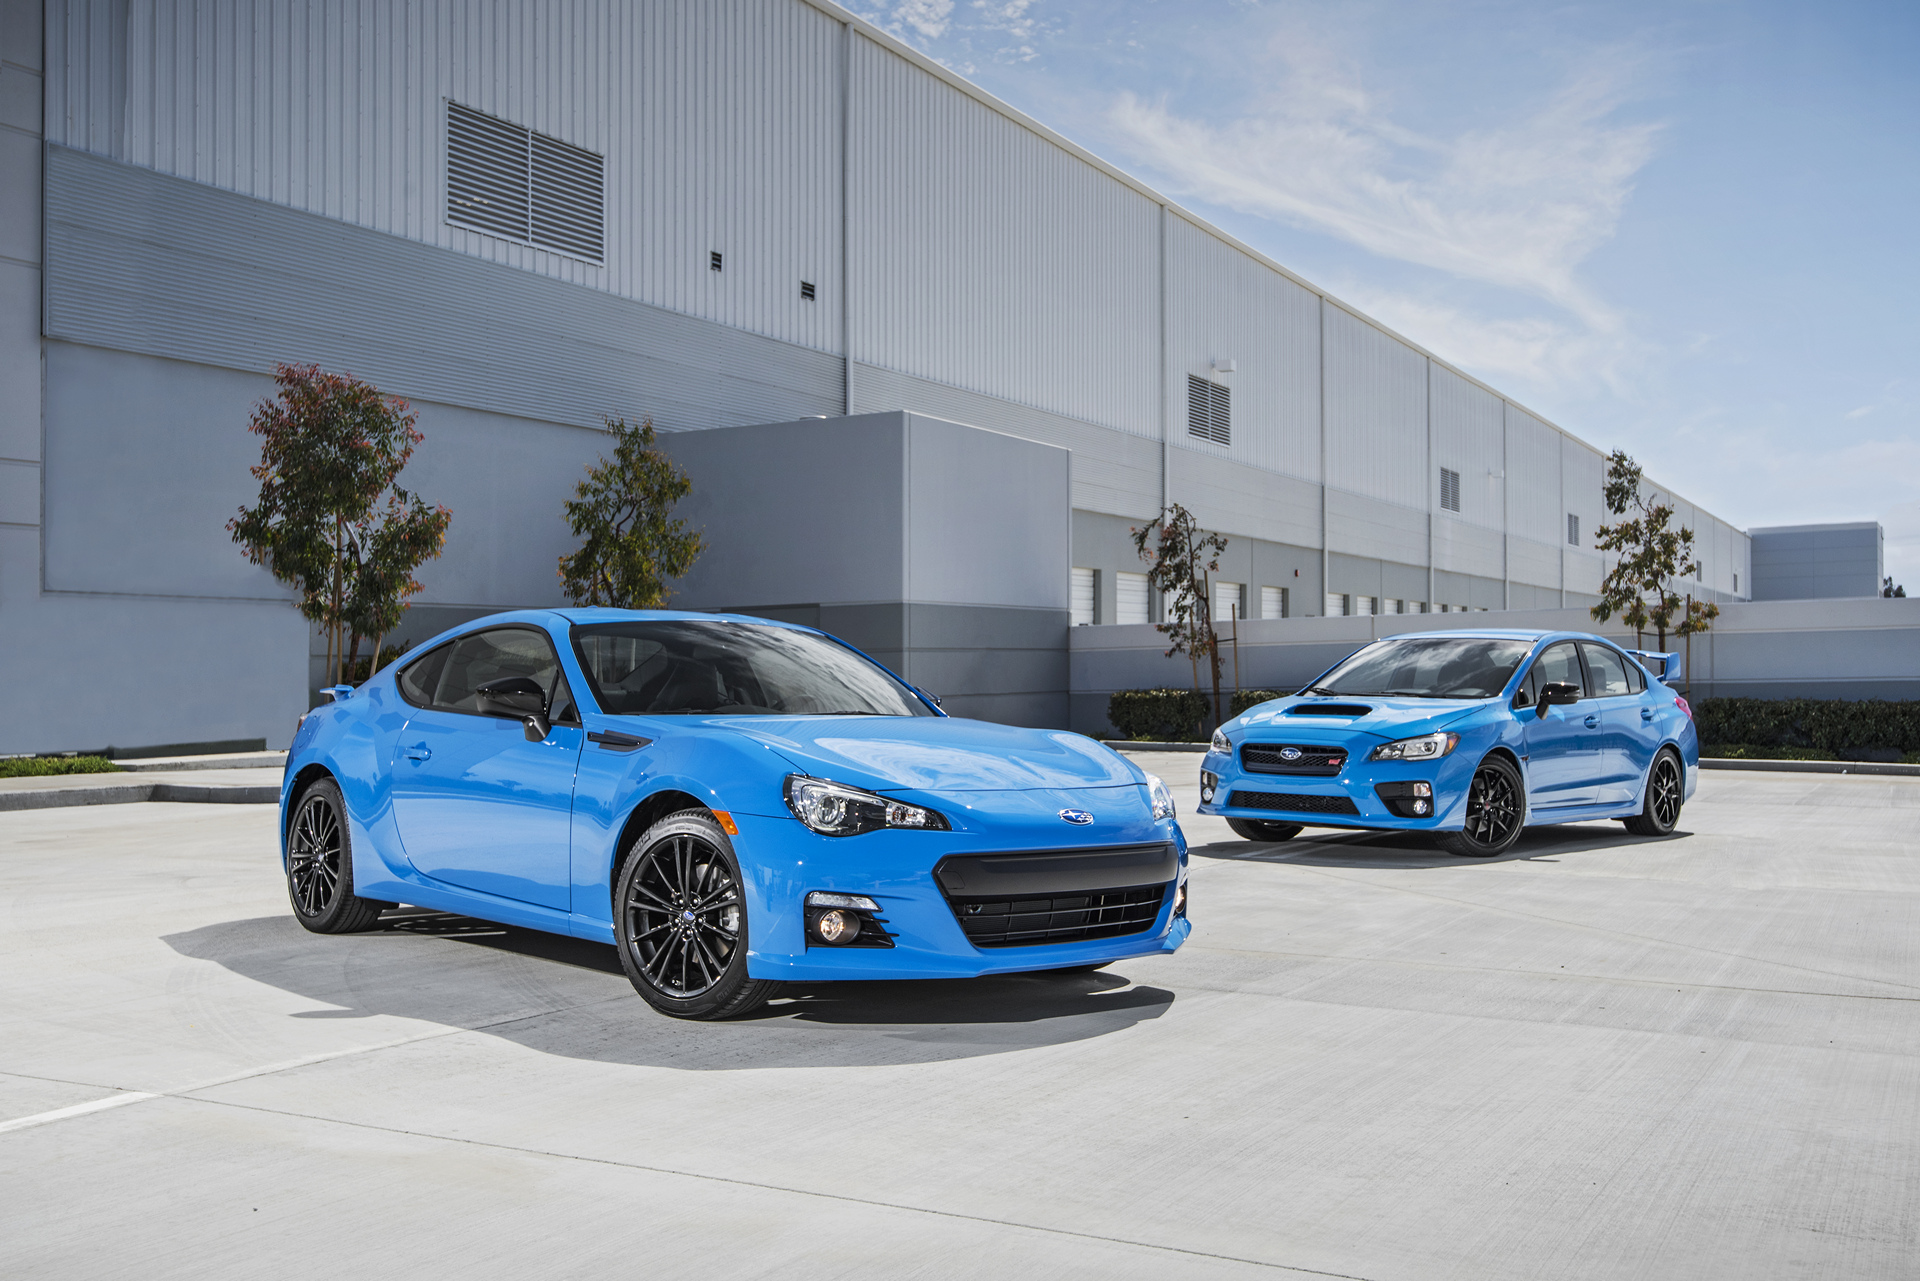 2016 Subaru BRZ Series.HyperBlue and 2016 Subaru WRX STI Series.HyperBlue © Fuji Heavy Industries, Ltd.